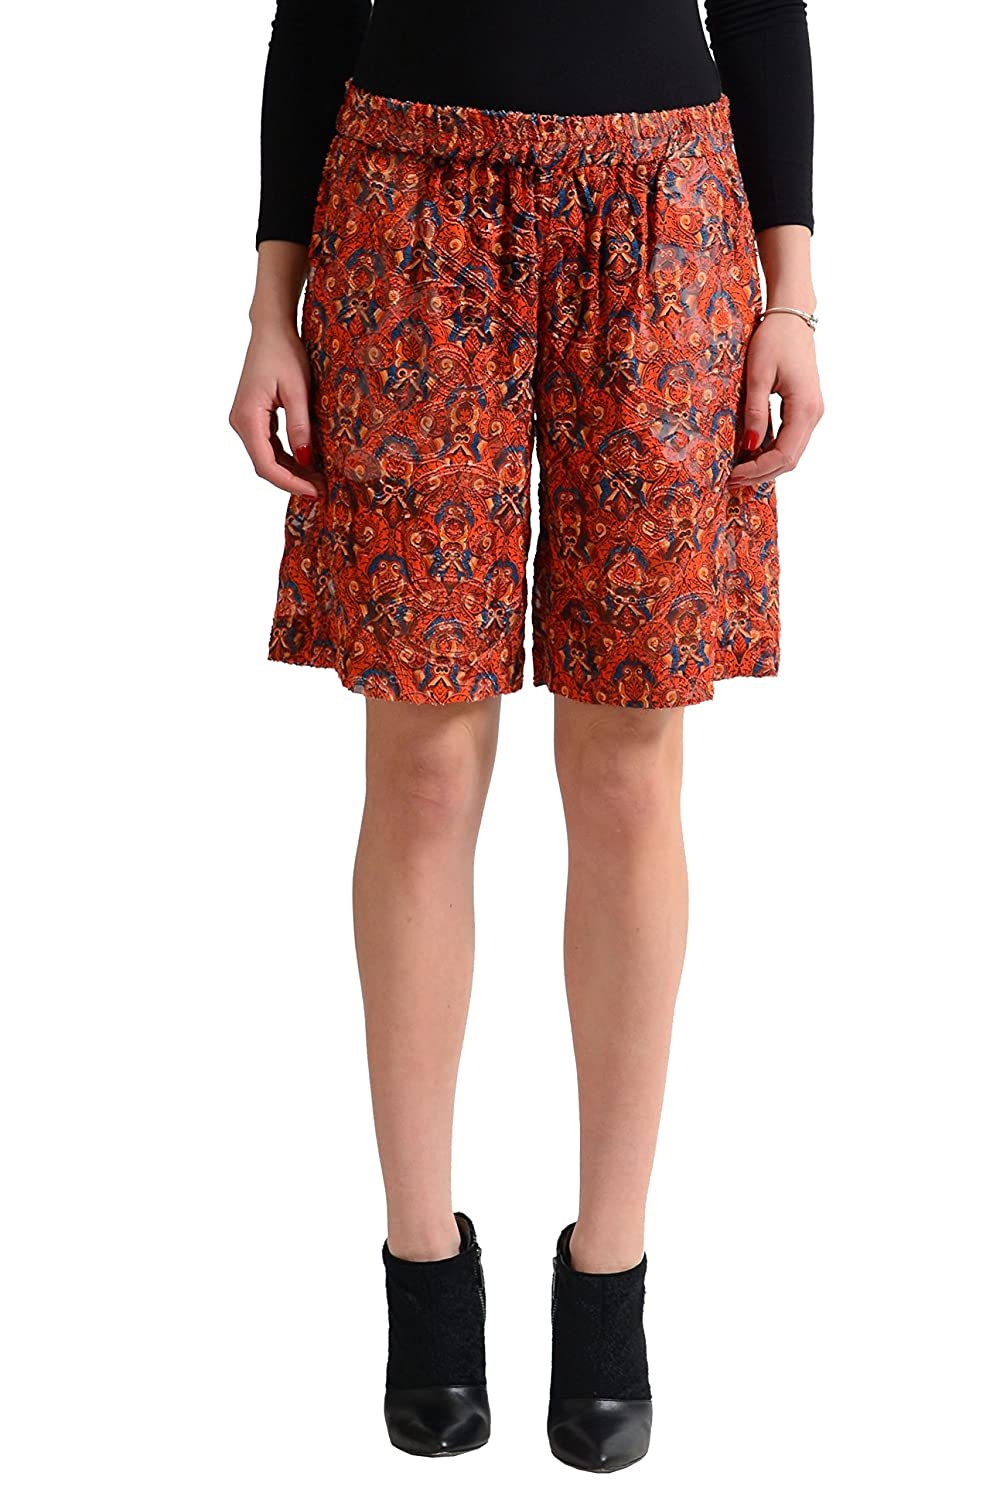 Just Cavalli Women's Multi-Color Silk See Through Shorts US S IT 40